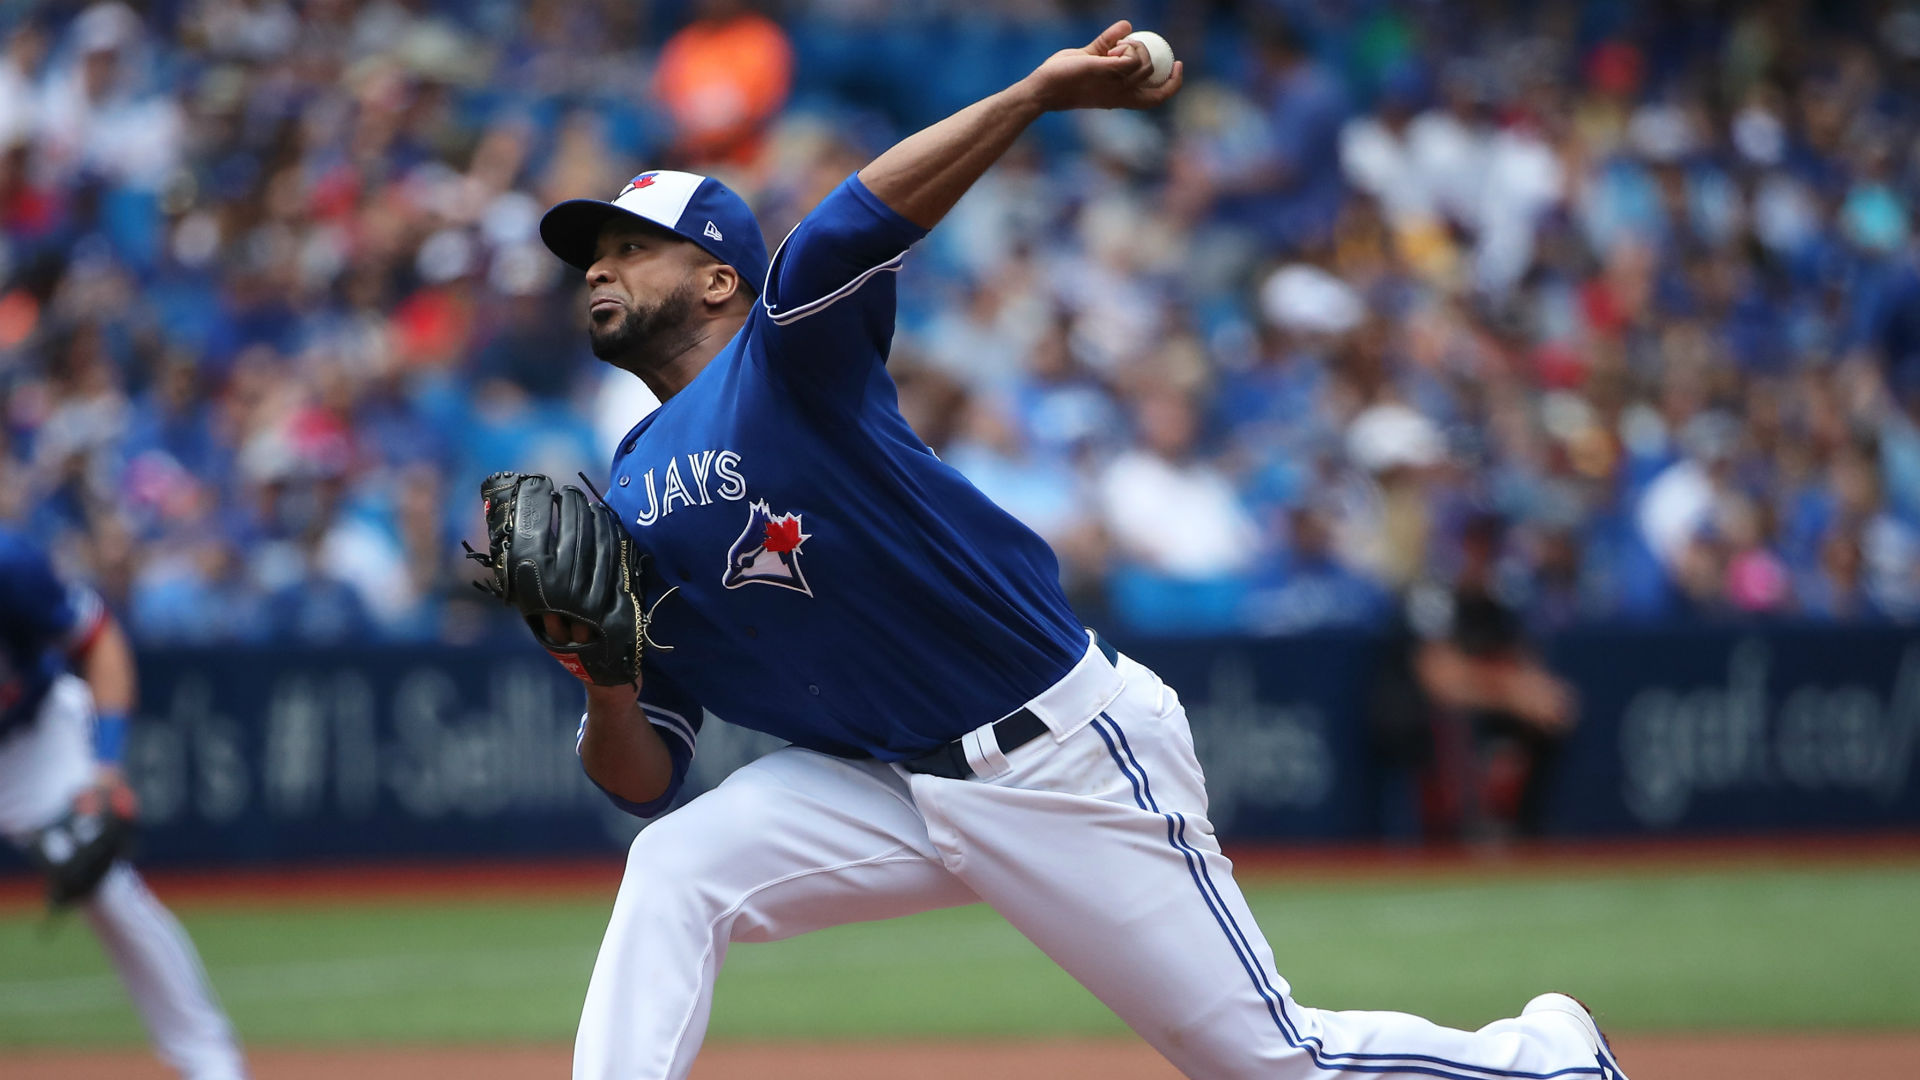 Major League Baseball trade rumors: Astros close to getting lefty Francisco Liriano, pending physical